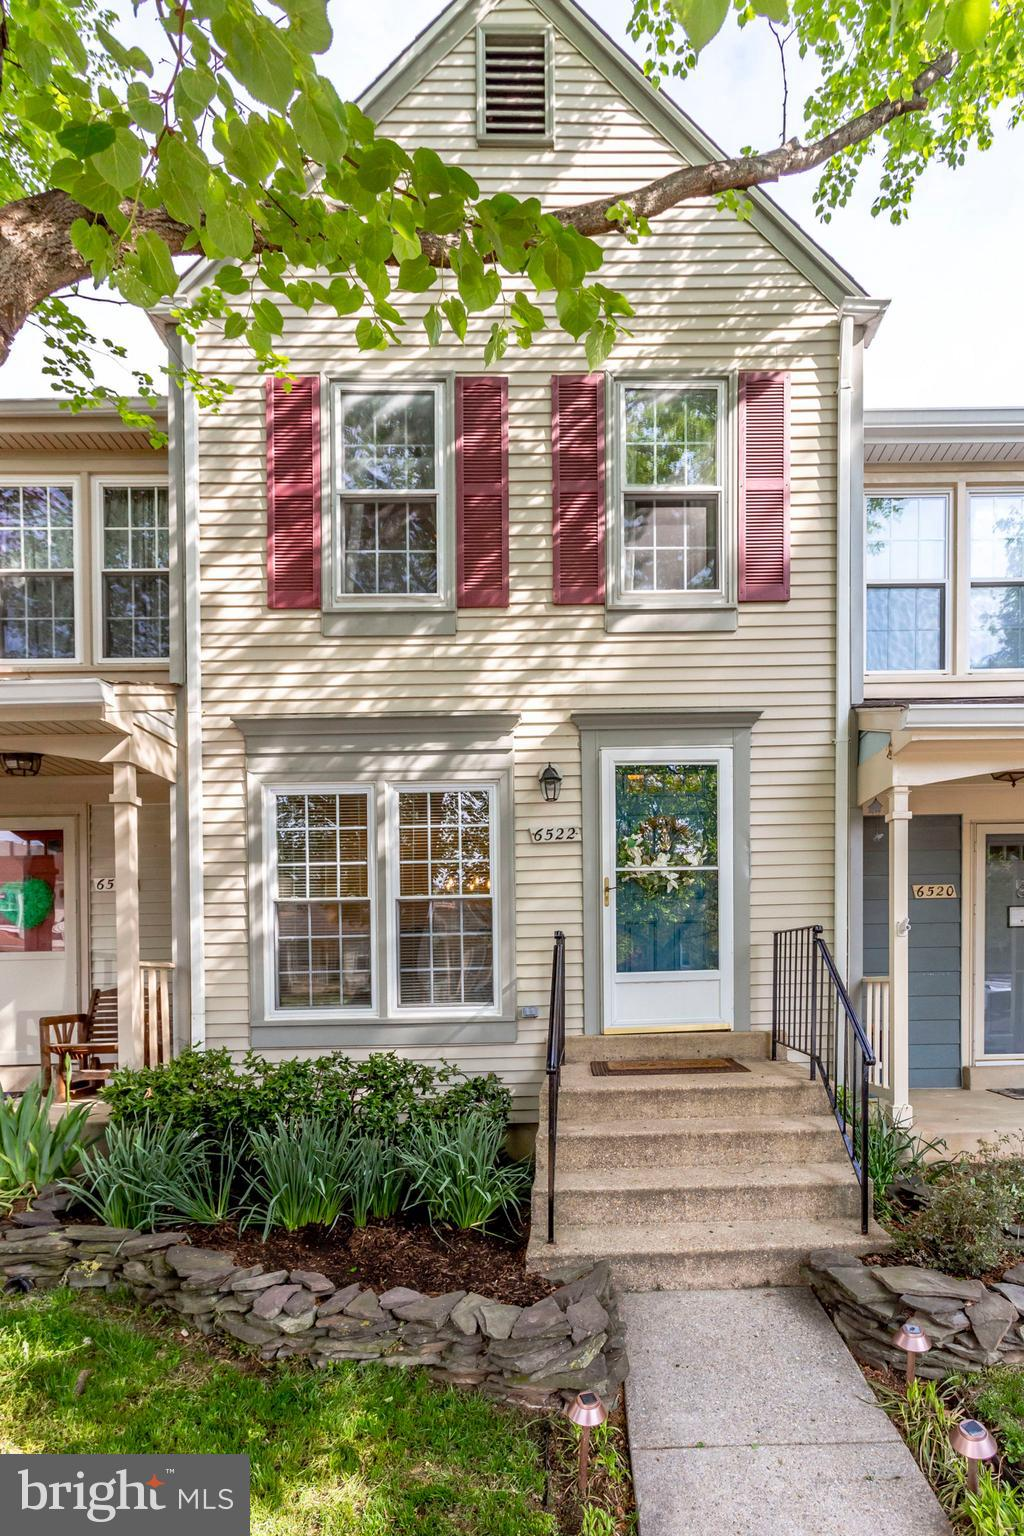 Location!!! Amazingly bright townhouse in South Kings Station. This 2 bedroom 2.5 bath has new carpet and has been meticulously maintained. Beautifully painted throughout it gives the feeling of spaciousness. The master offers double closets, skylights and vaulted ceilings. The cosy lower level is perfect for turning on the fire and watching movies. The lower level also offer tons of storage! They is an extra room that can hold all the Costco shopping you can do! The best part might be the lovely fenced in backyard backing to trees. Close to Huntington Metro, shops, restaurants and so much more! You don't want to miss this one! It will go quickly. First open will be Sunday, May 5, 2-4pm.